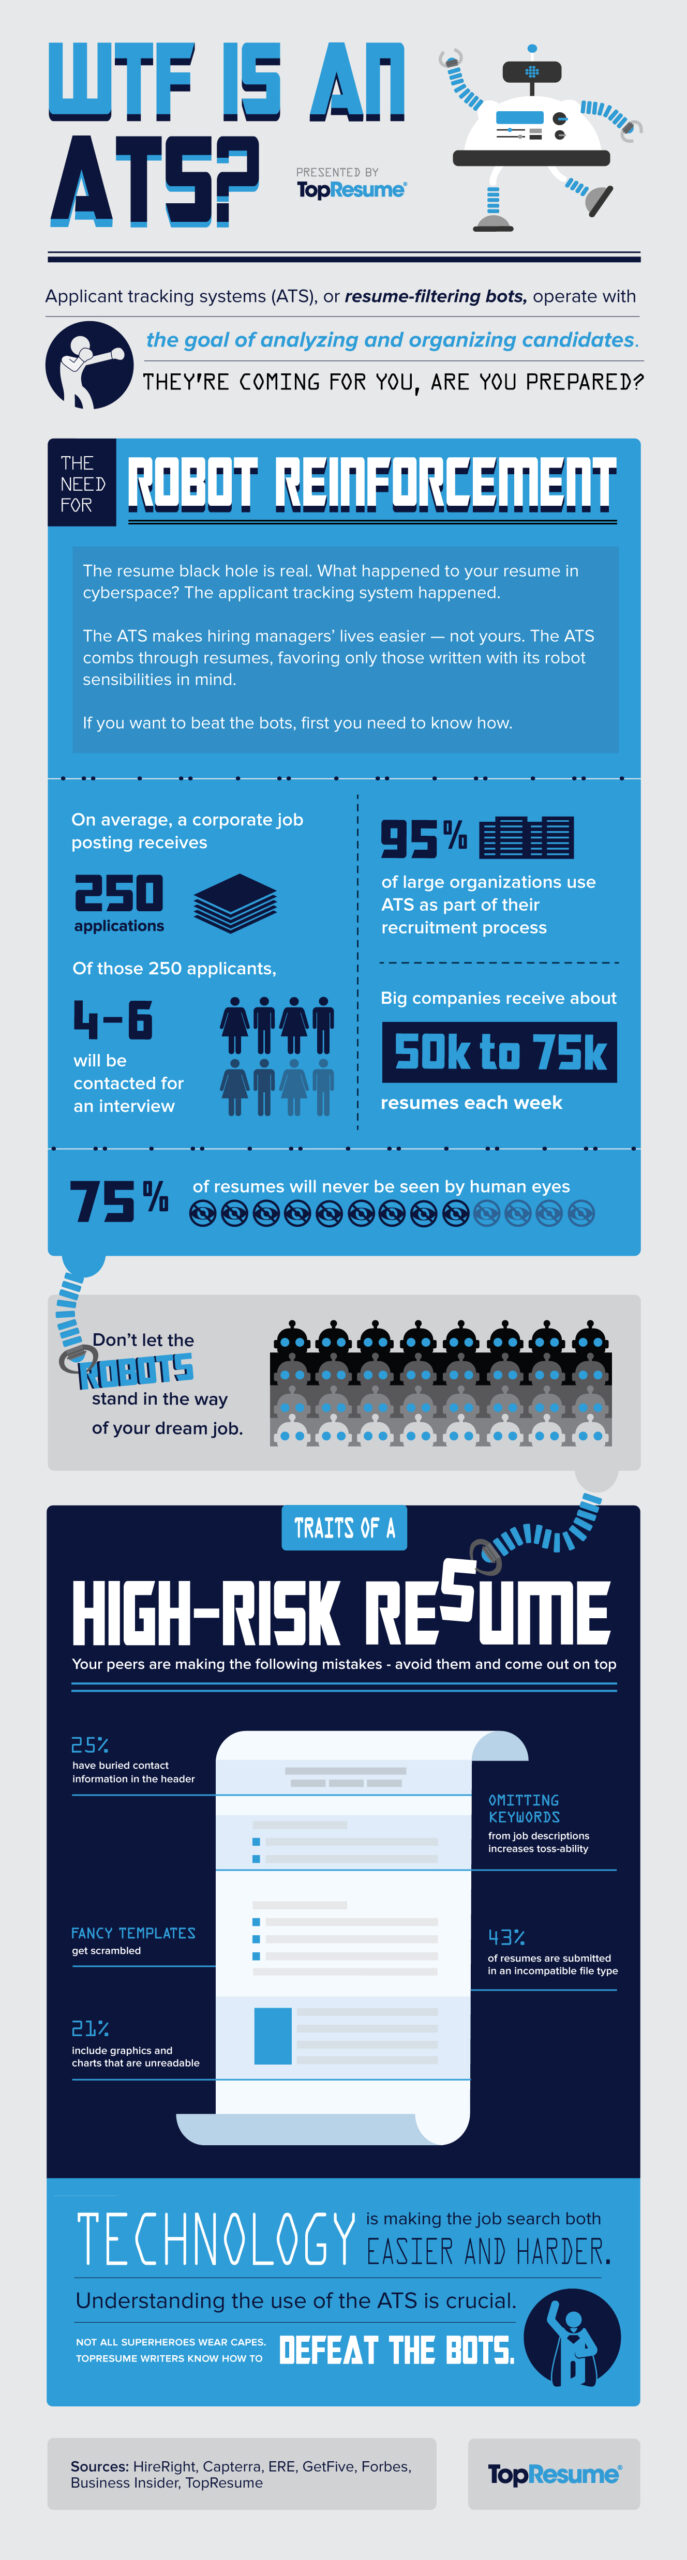 an ats to write resume beat the applicant tracking system topresume test in infographic Resume Test Resume In Ats